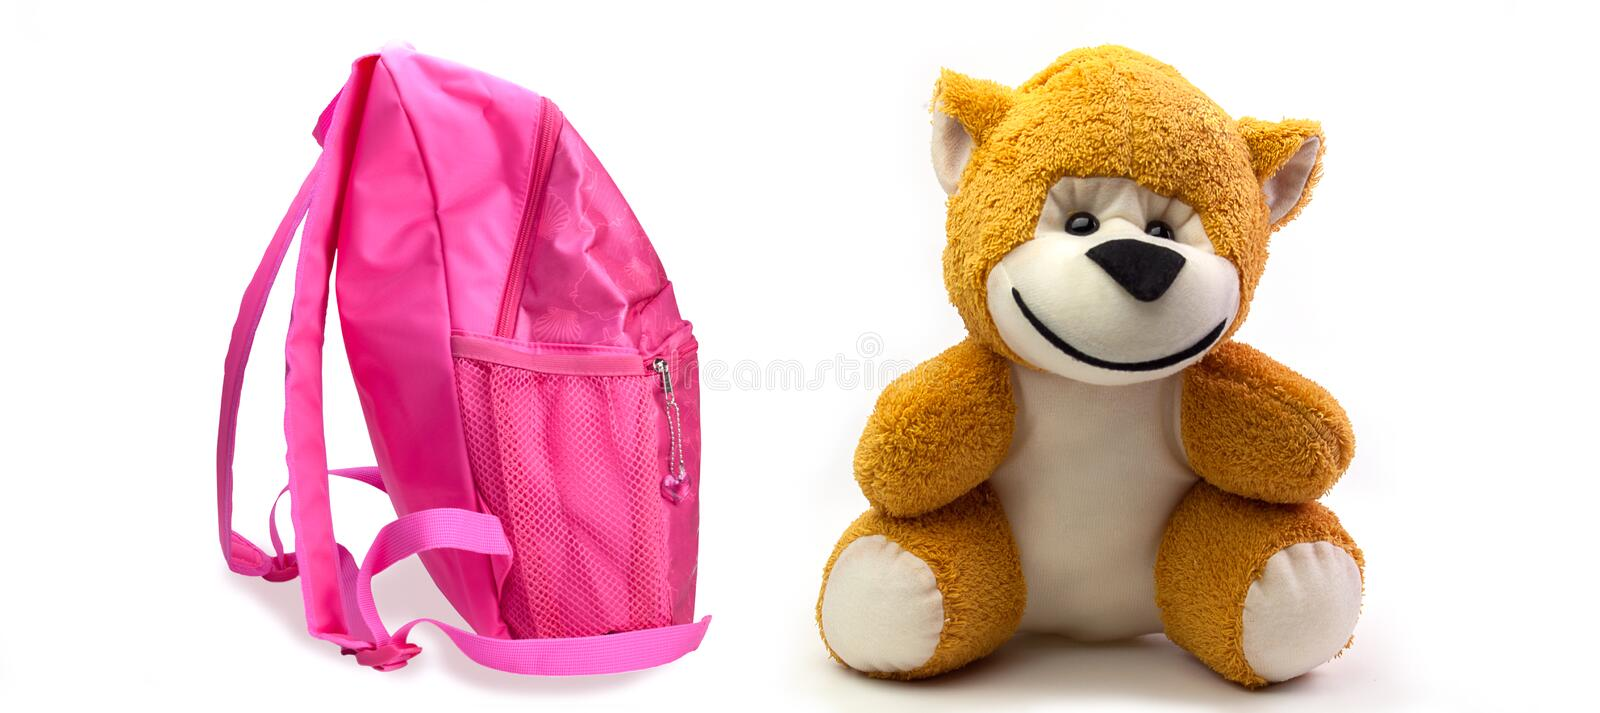 School backpack for girls and monkey toy. On white background stock photography